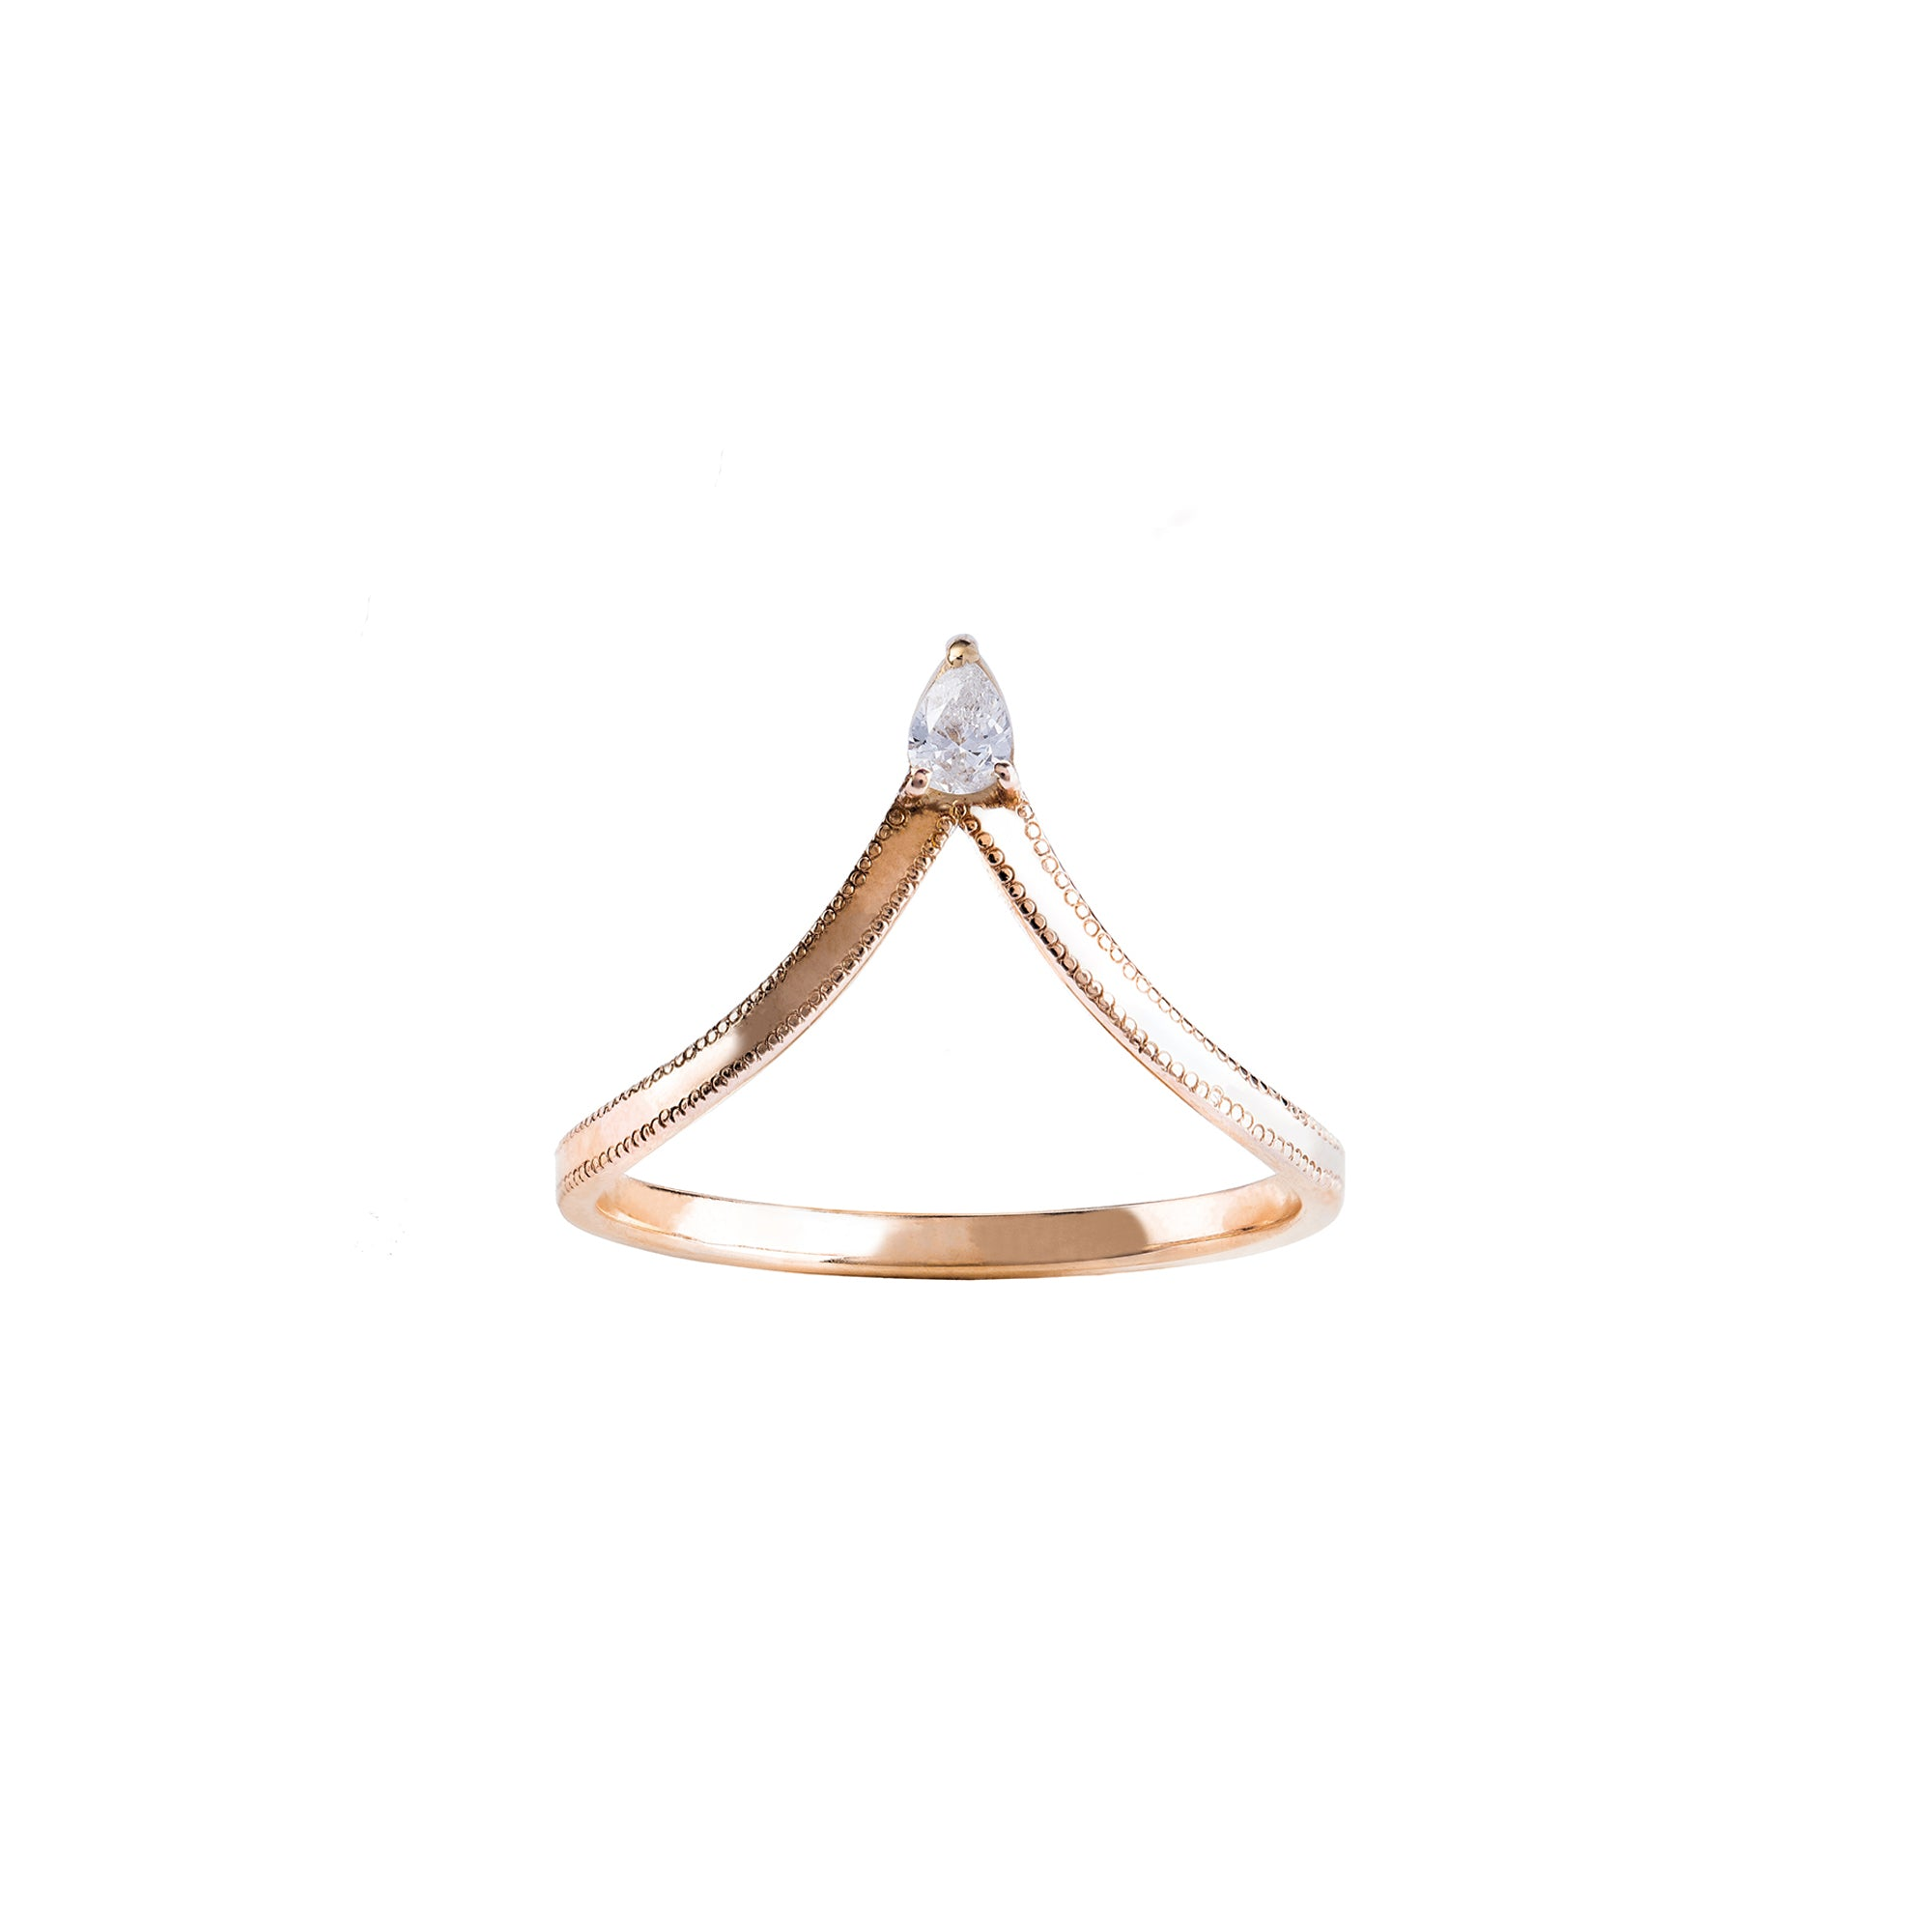 Jenny Dee Asterope Ring - Diamond - Rings - Broken English Jewelry